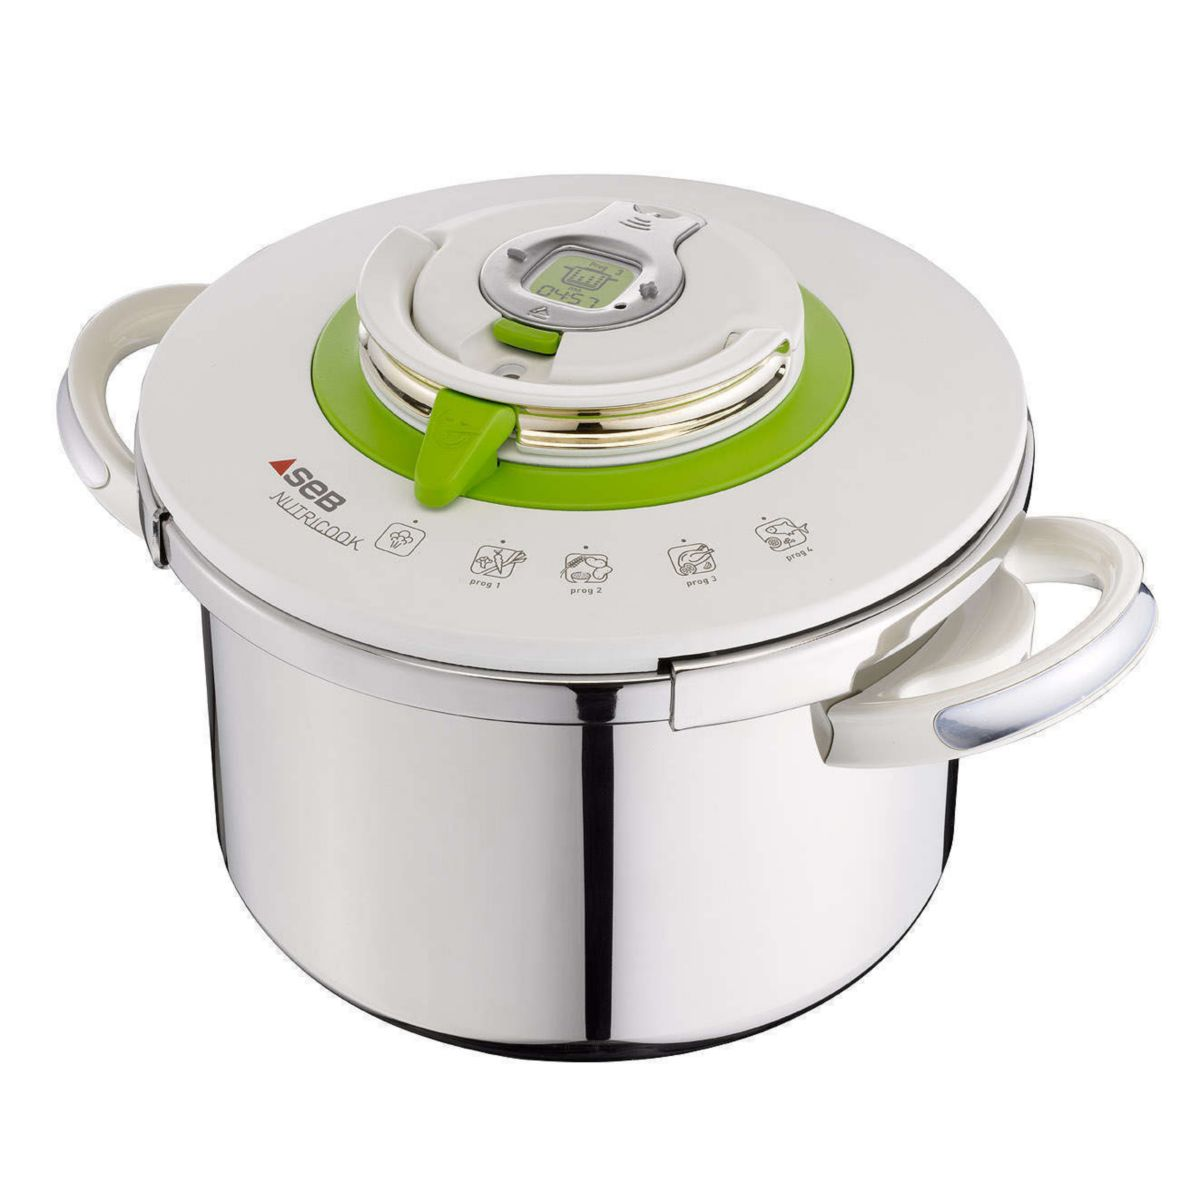 Autocuiseur SEB NUTRICOOK P4220706 6L (photo)